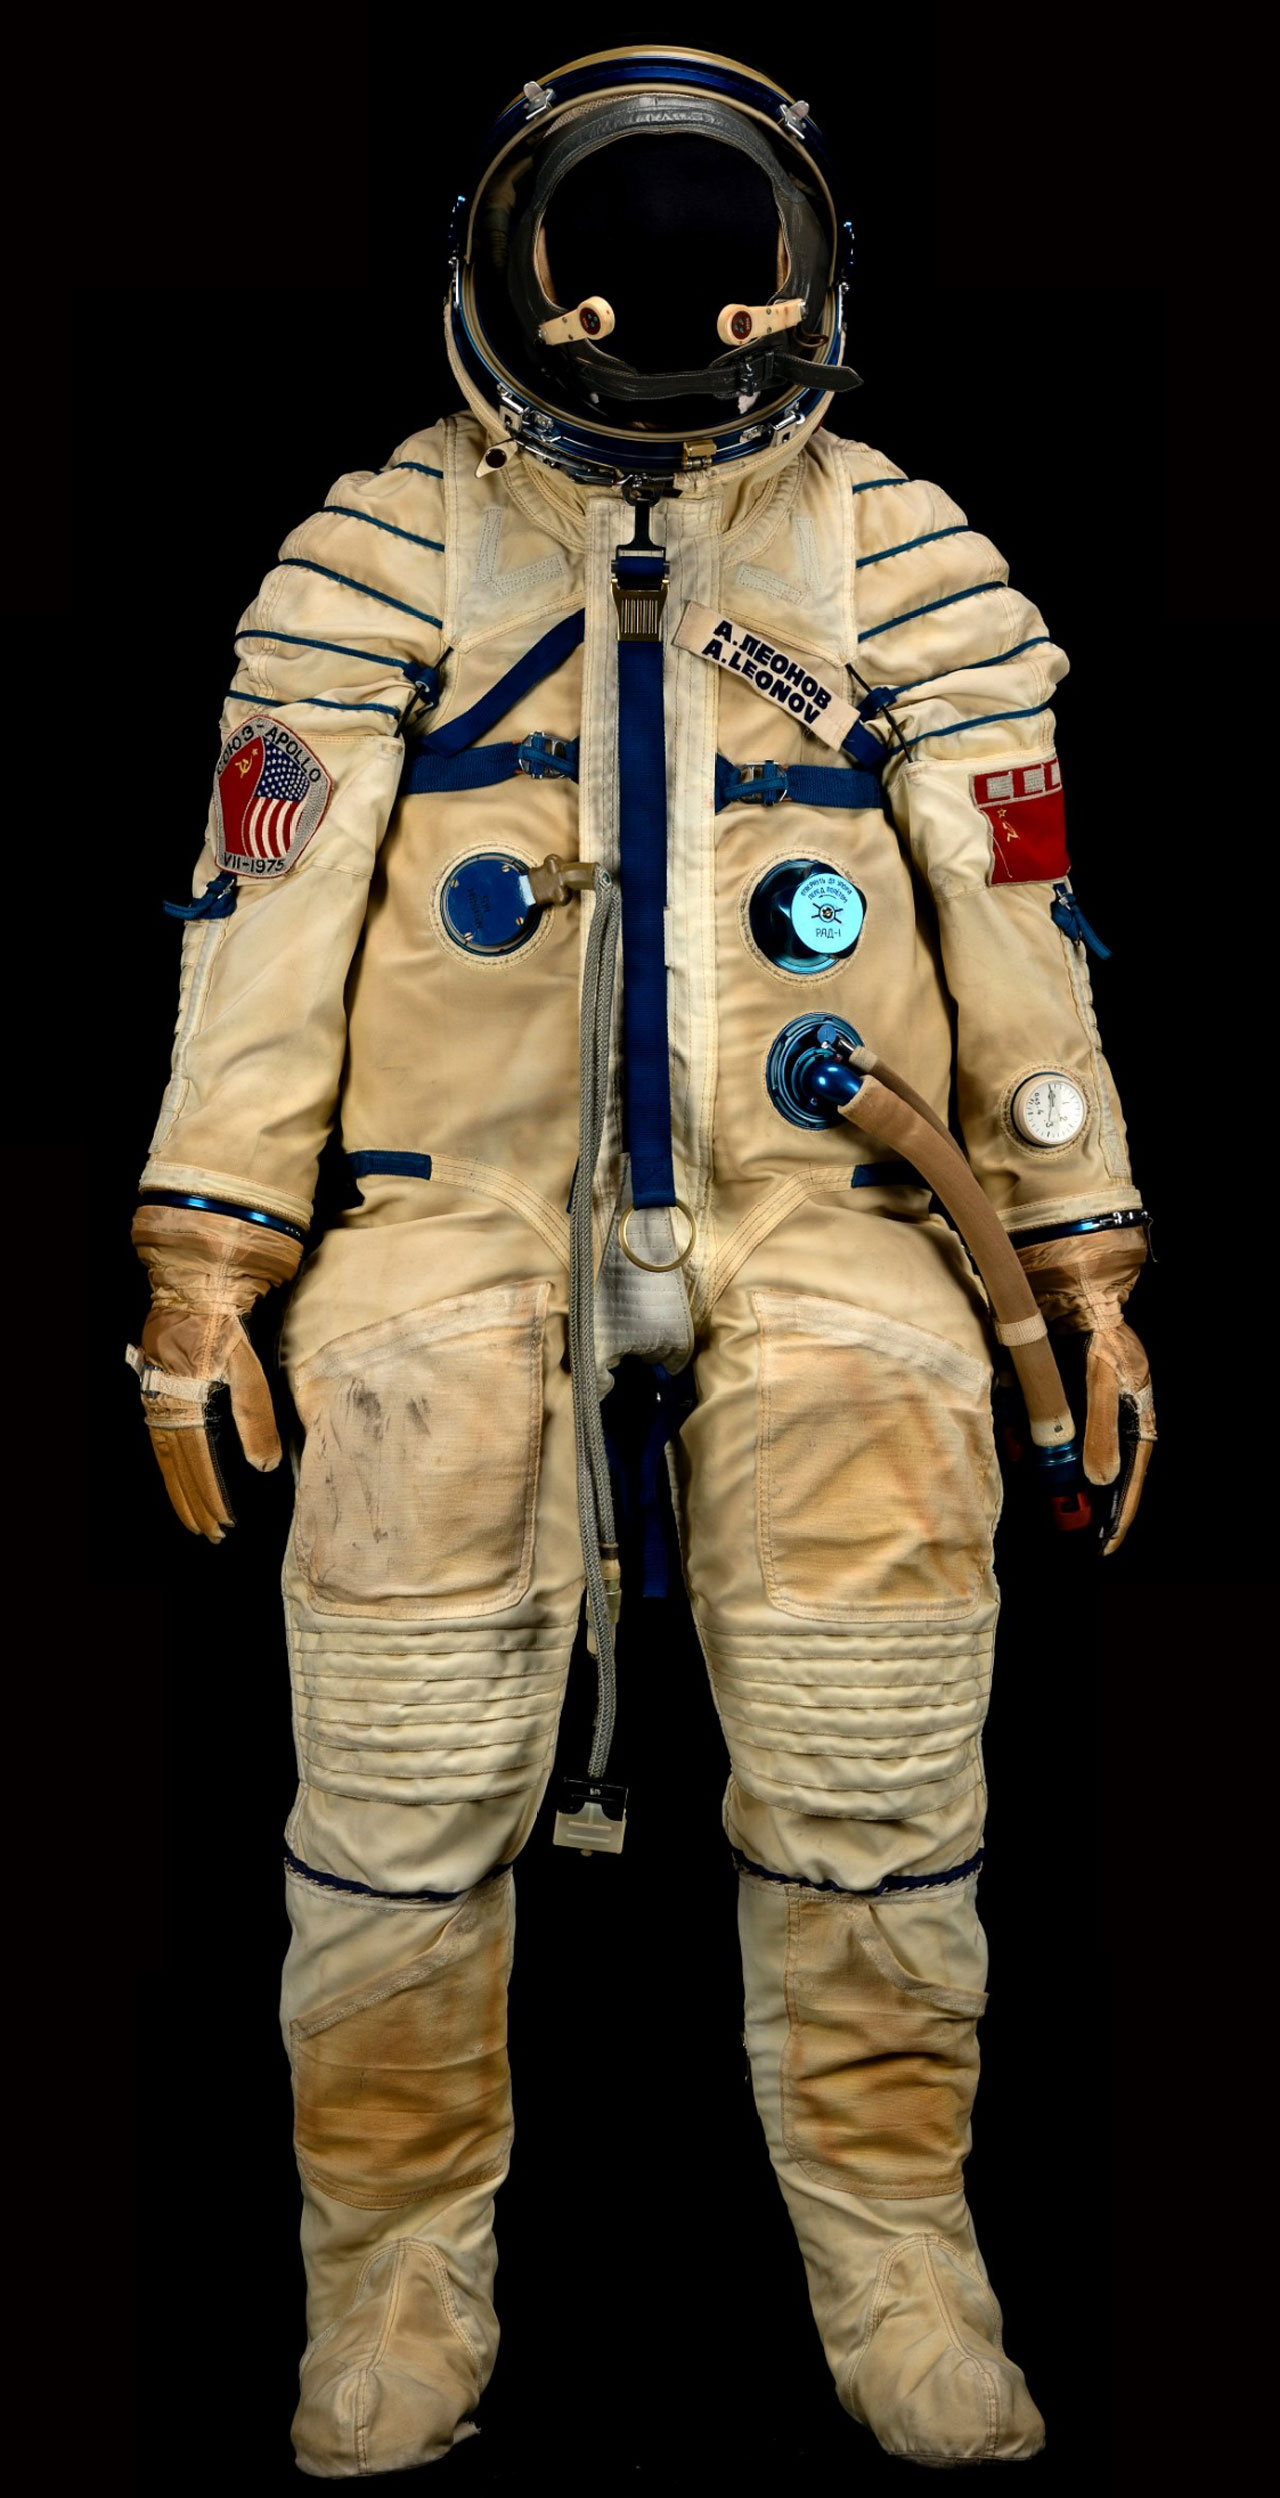 Space suit  Wikipedia